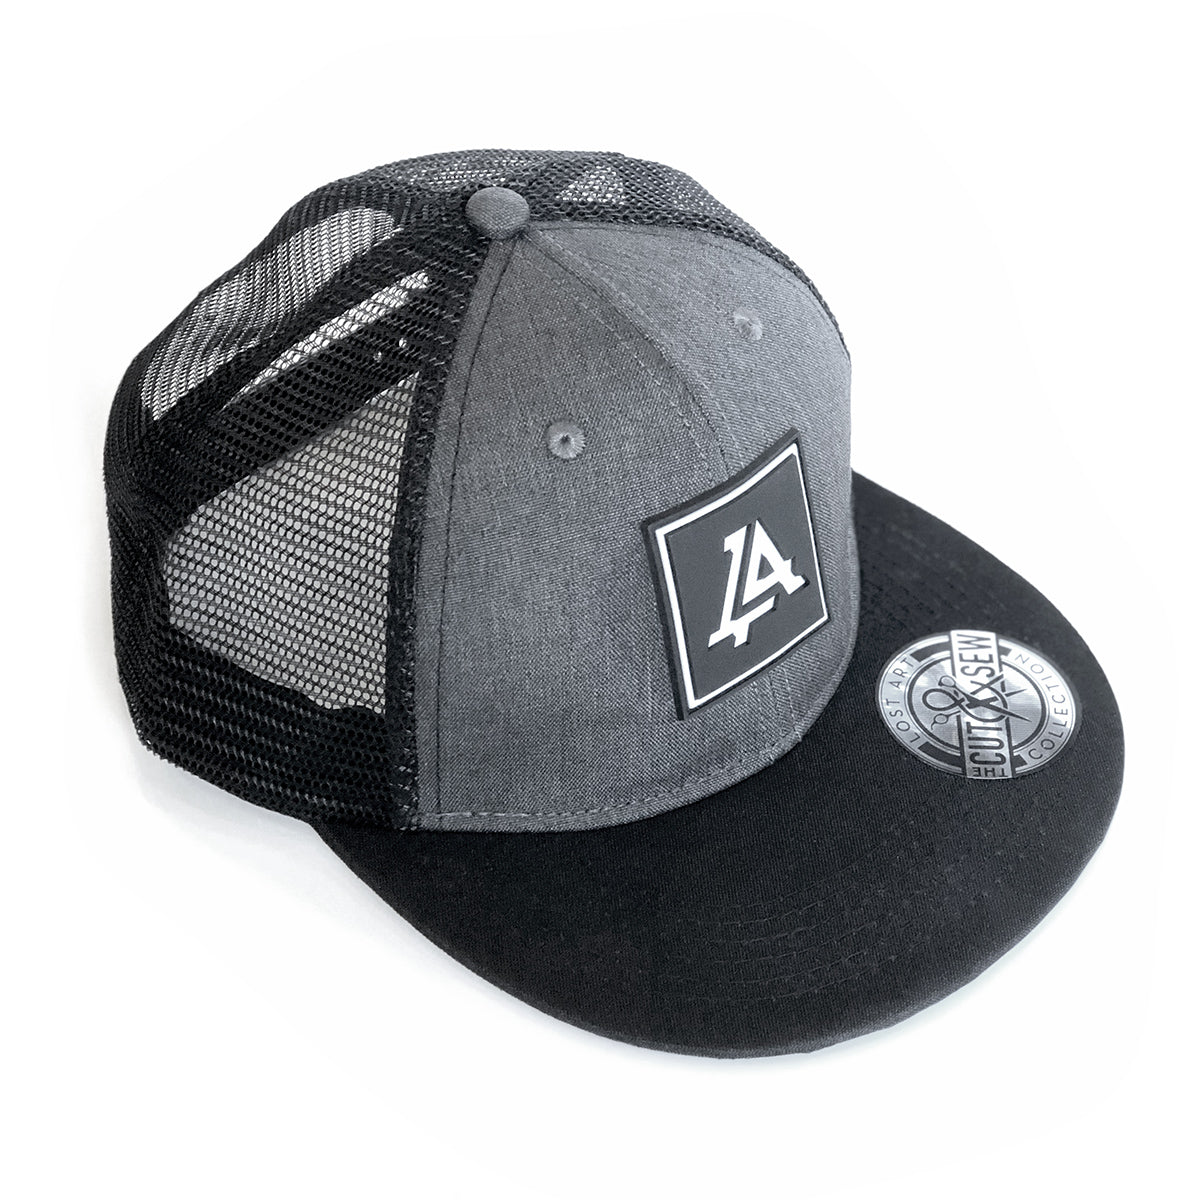 Lost Art Canada - grey and black patch snapback hat front view